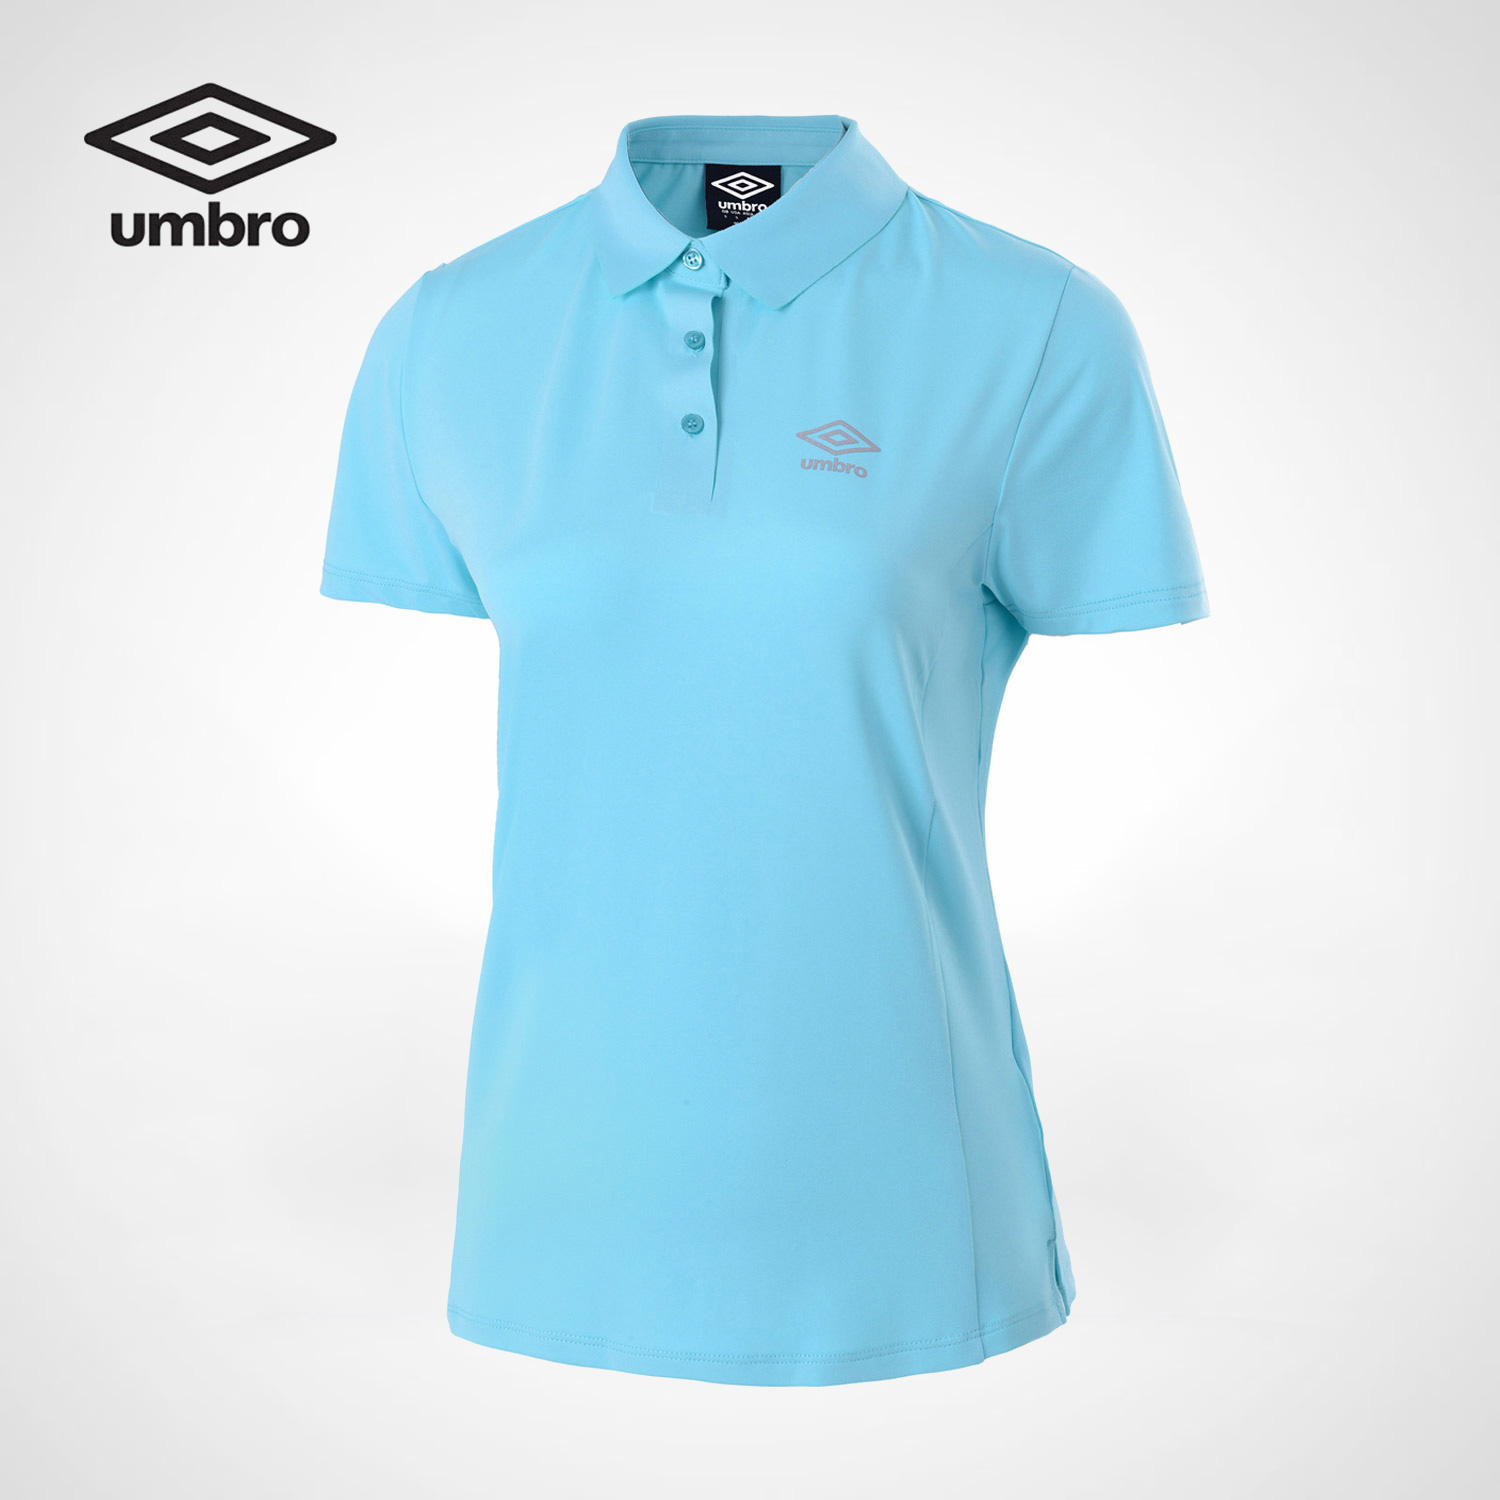 Umbro 2017 New Women Sports Short Sleeved Shirt Women Tops For Lady Polo Shirt Femme Sportswear UCC63108